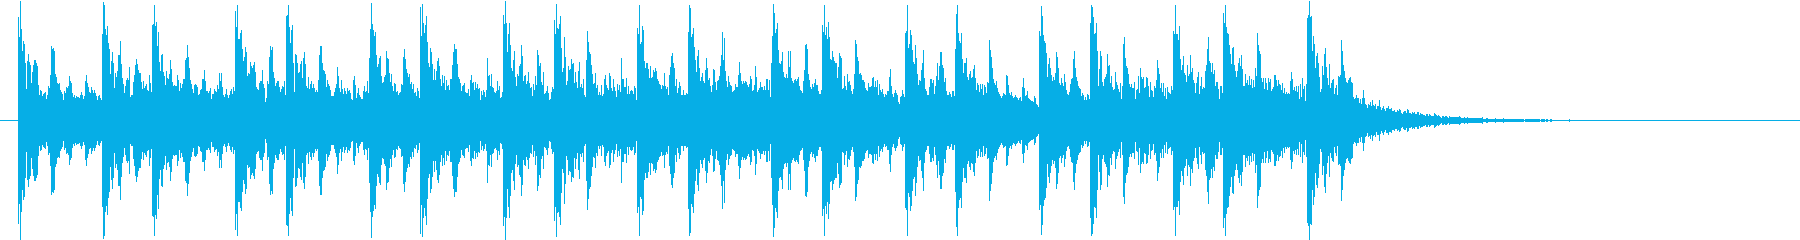 Game Battle Wind Jingle's reproduced waveform